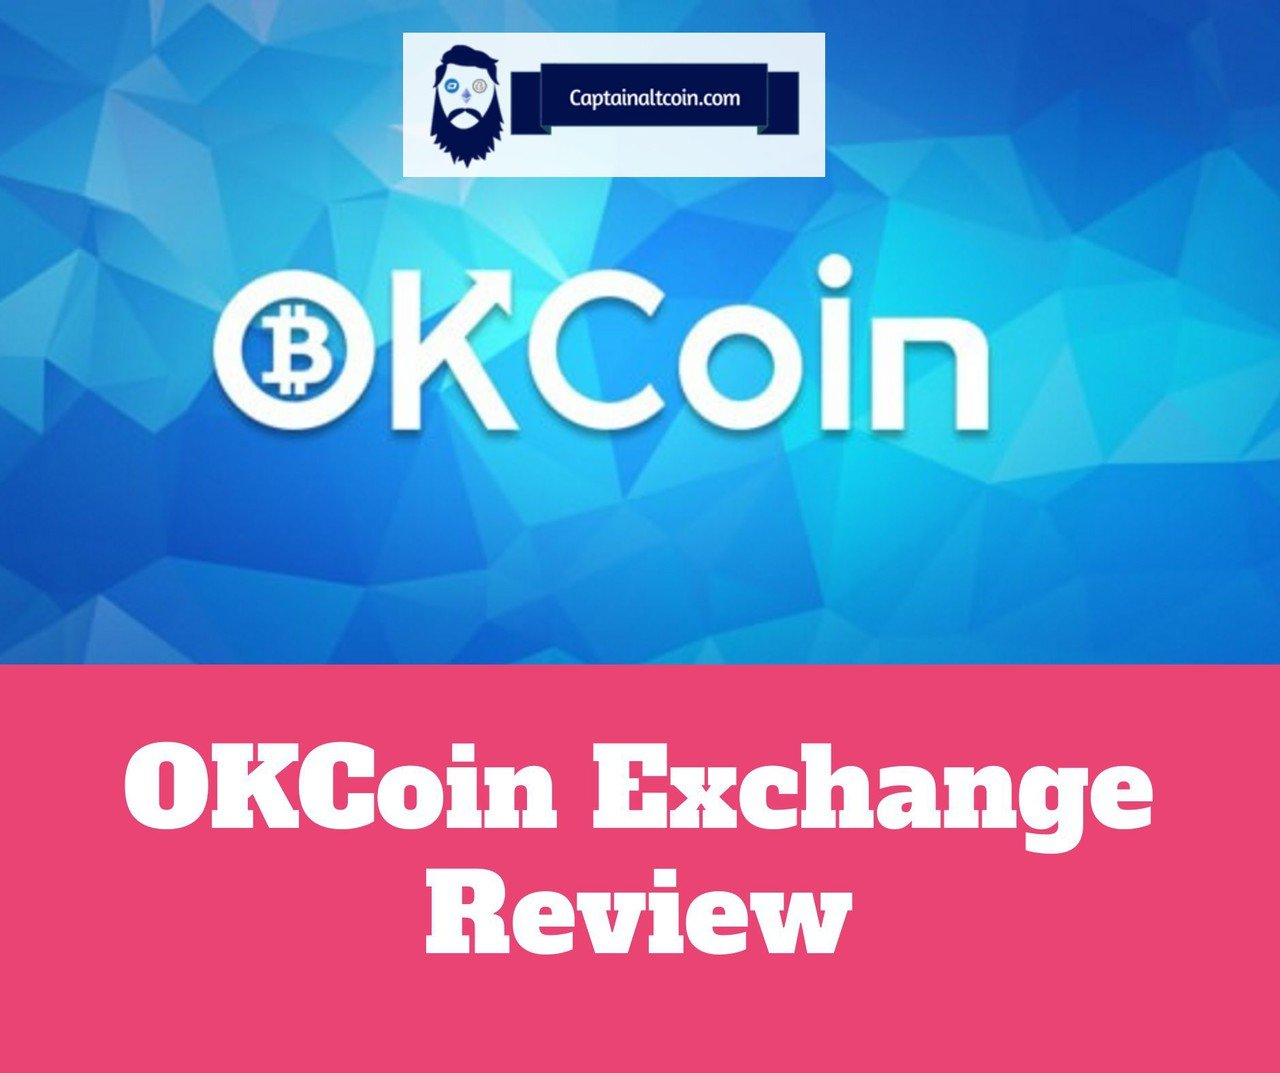 OKCoin Exchange Review